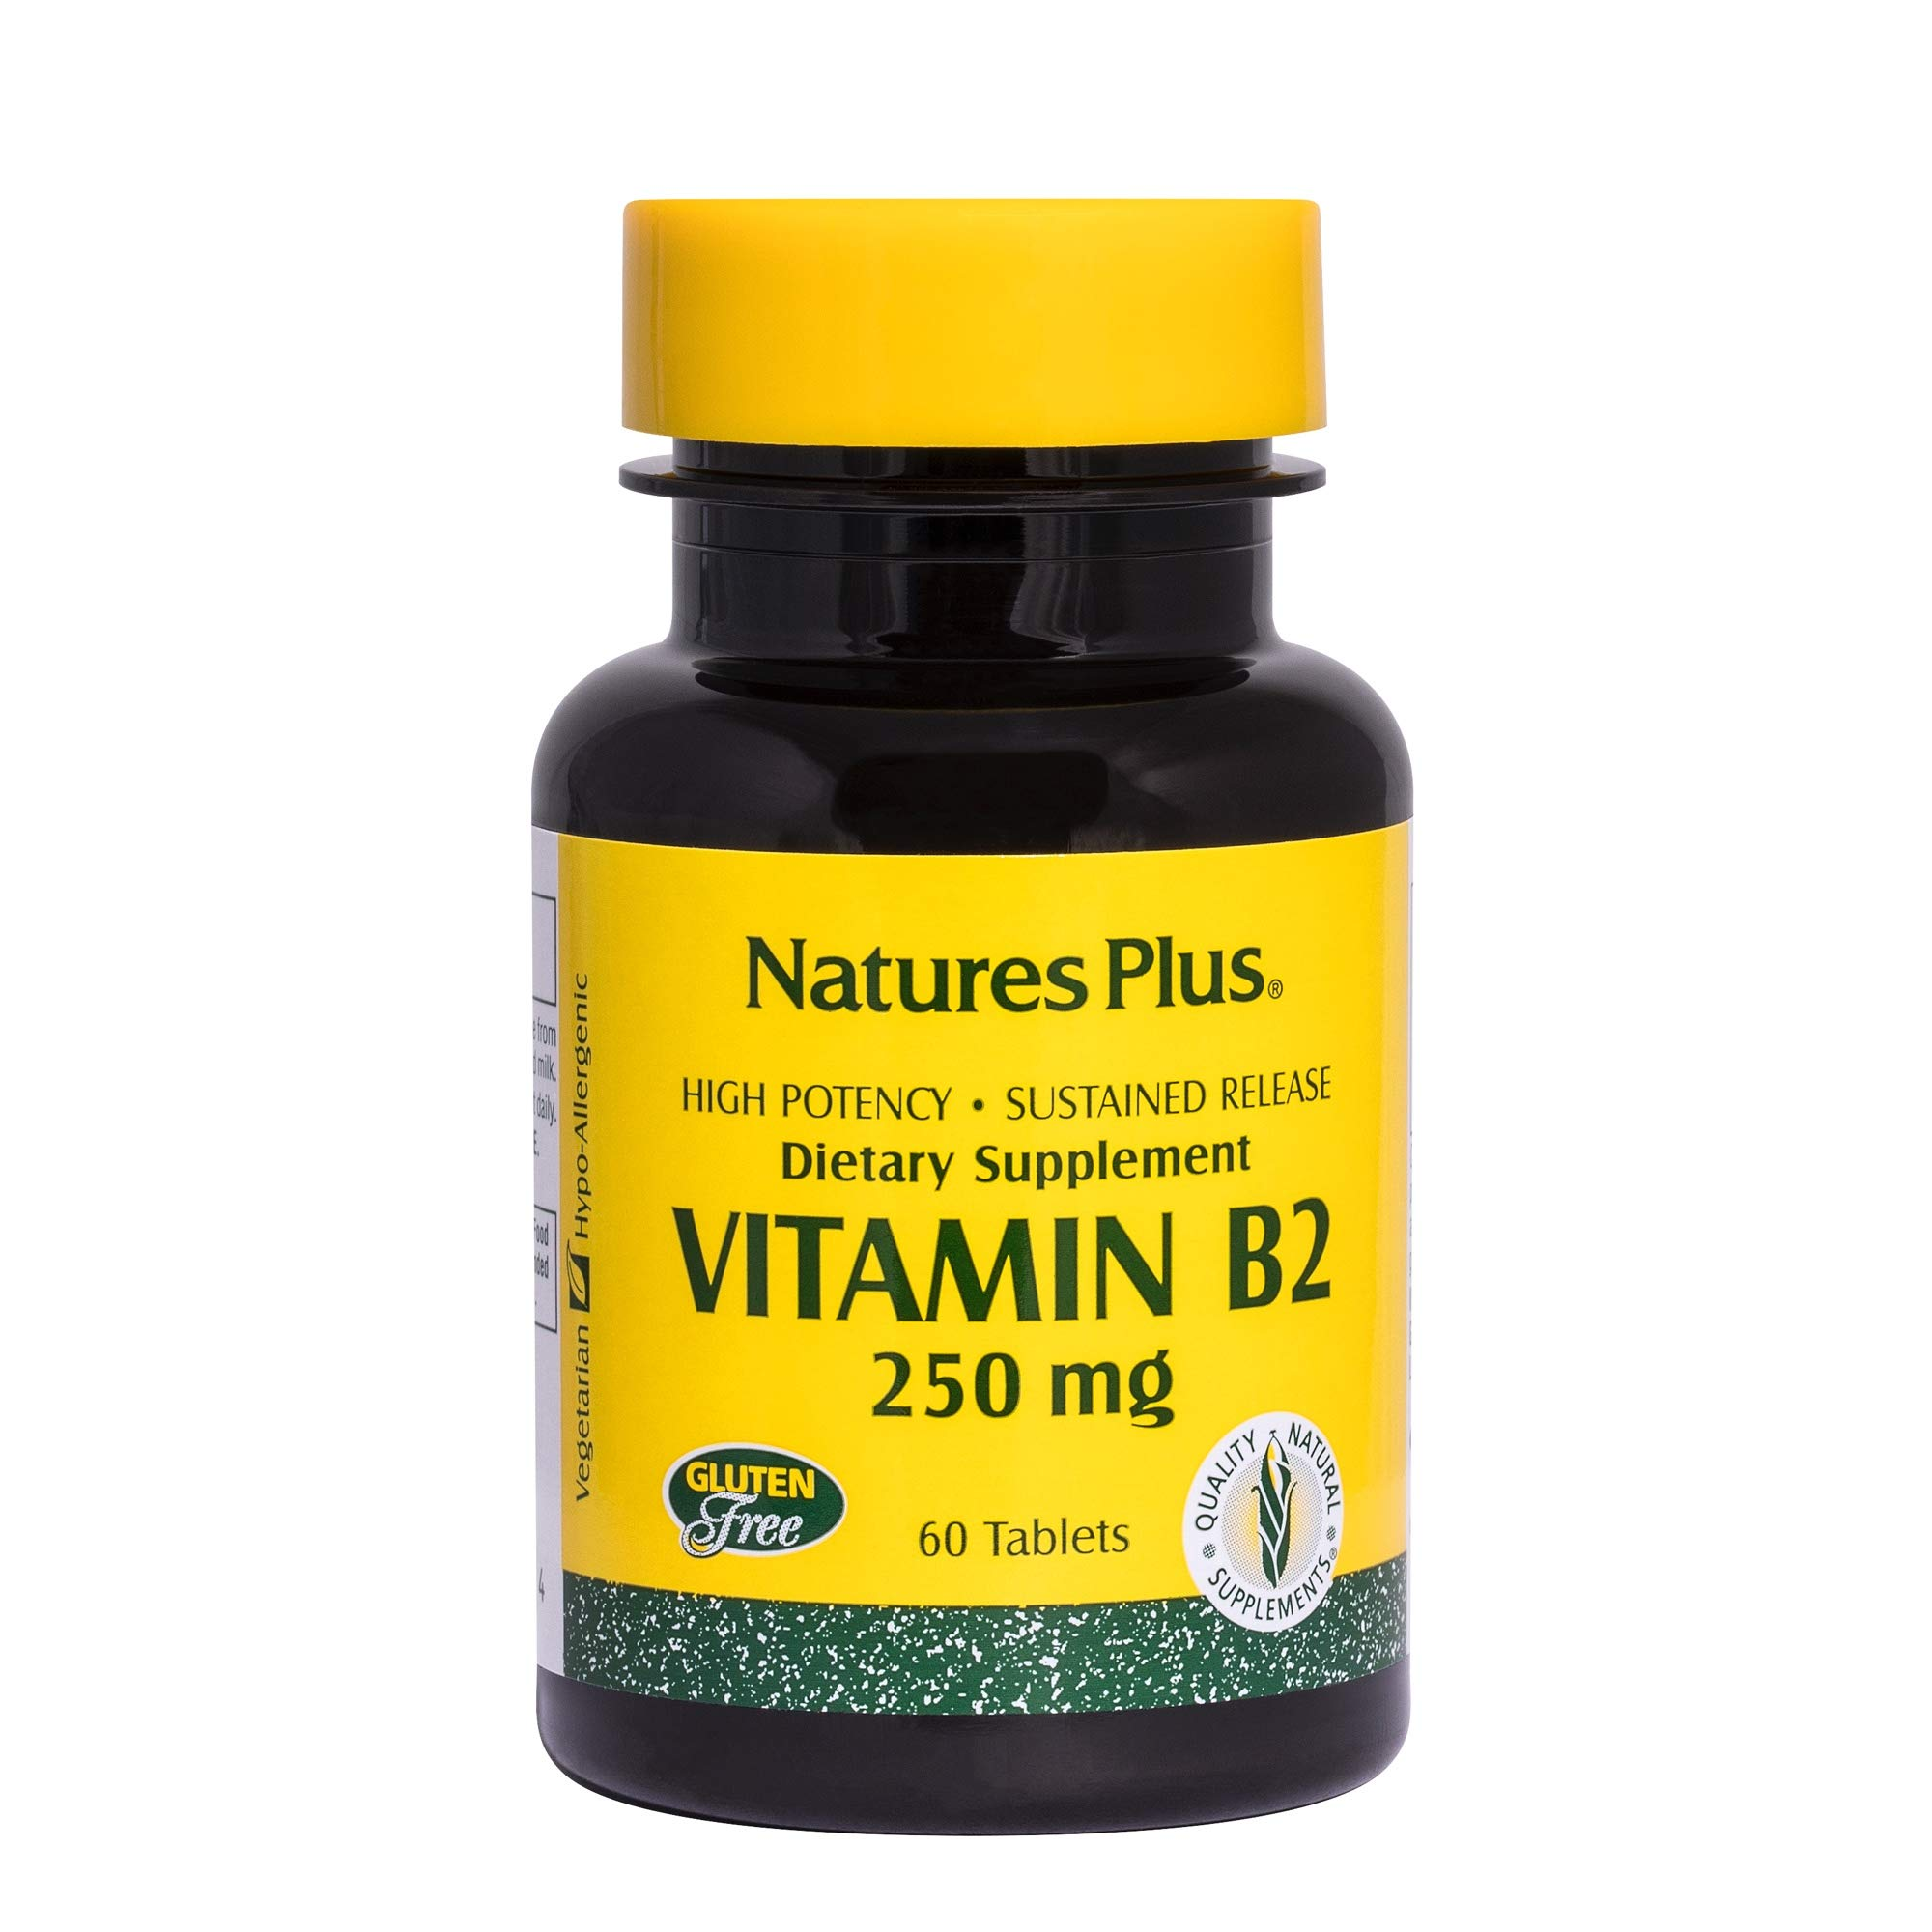 Natures Plus Vitamin B2 (Riboflavin) - 250 mg, 60 Vegetarian Tablets, Sustained Release - Energy & Metabolism Booster, Digestion & Immune System Support Supplement - Gluten Free - 60 Servings